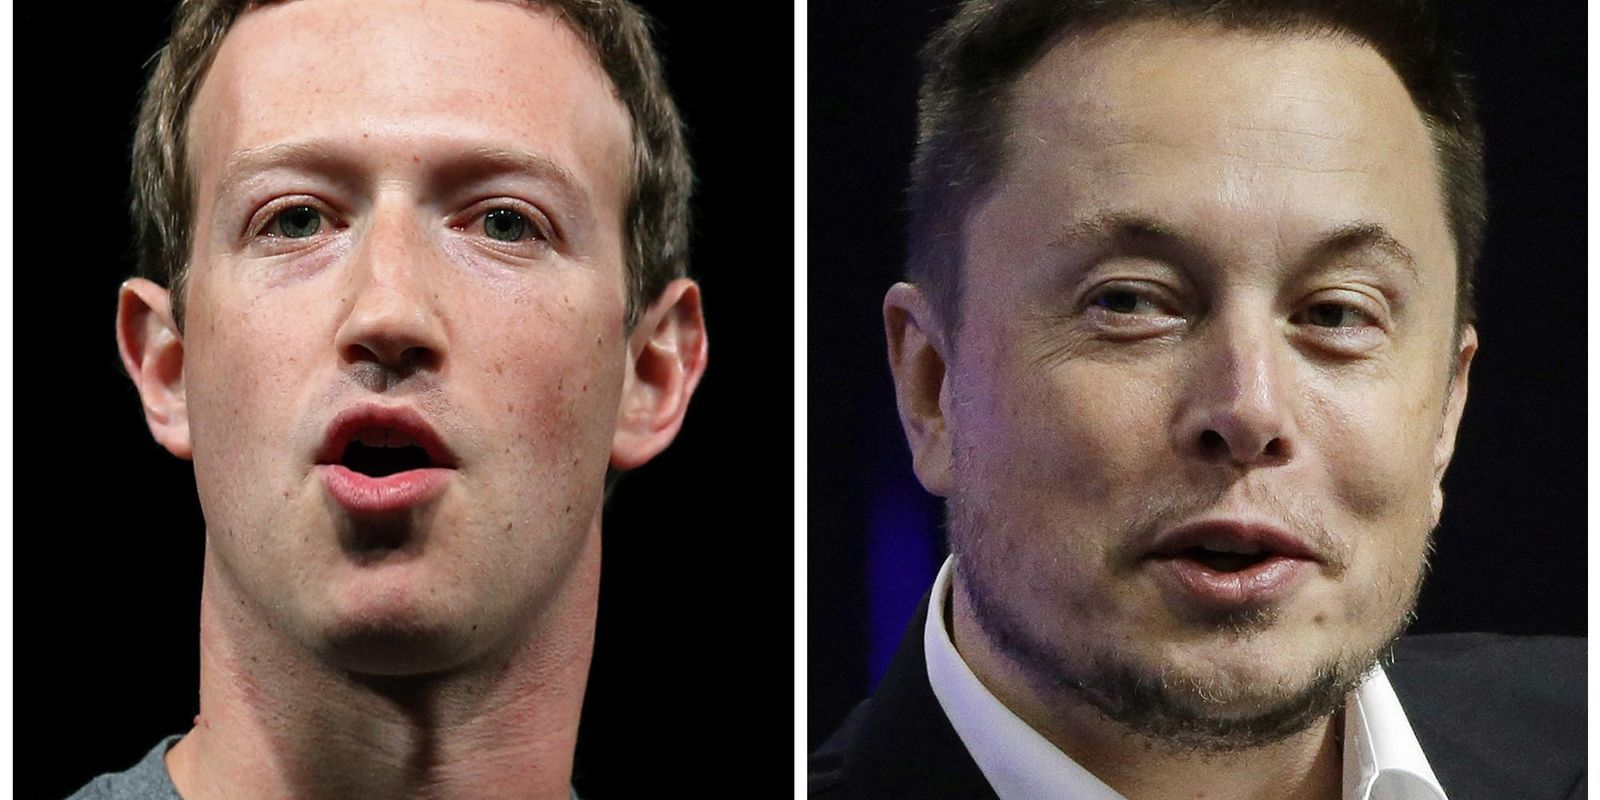 Zuckerberg and Elon Musk Face Off on Artificial Intelligence